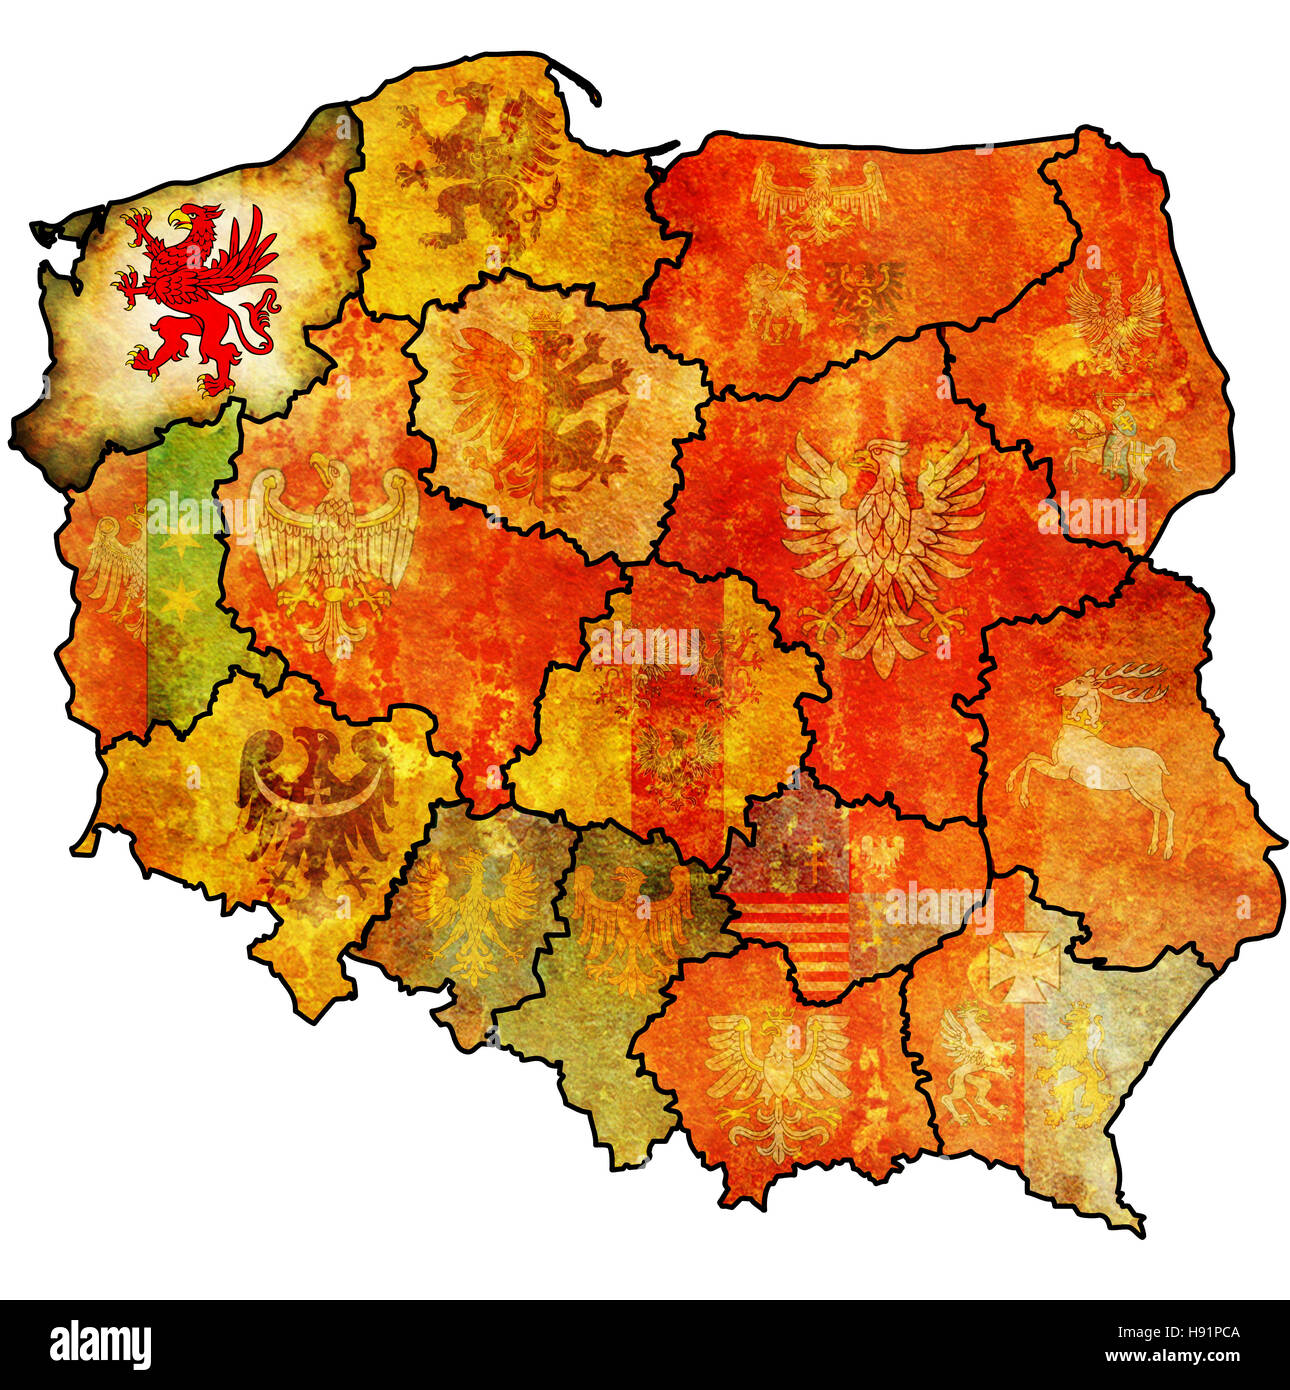 western pomerania region on administration map of poland with flag